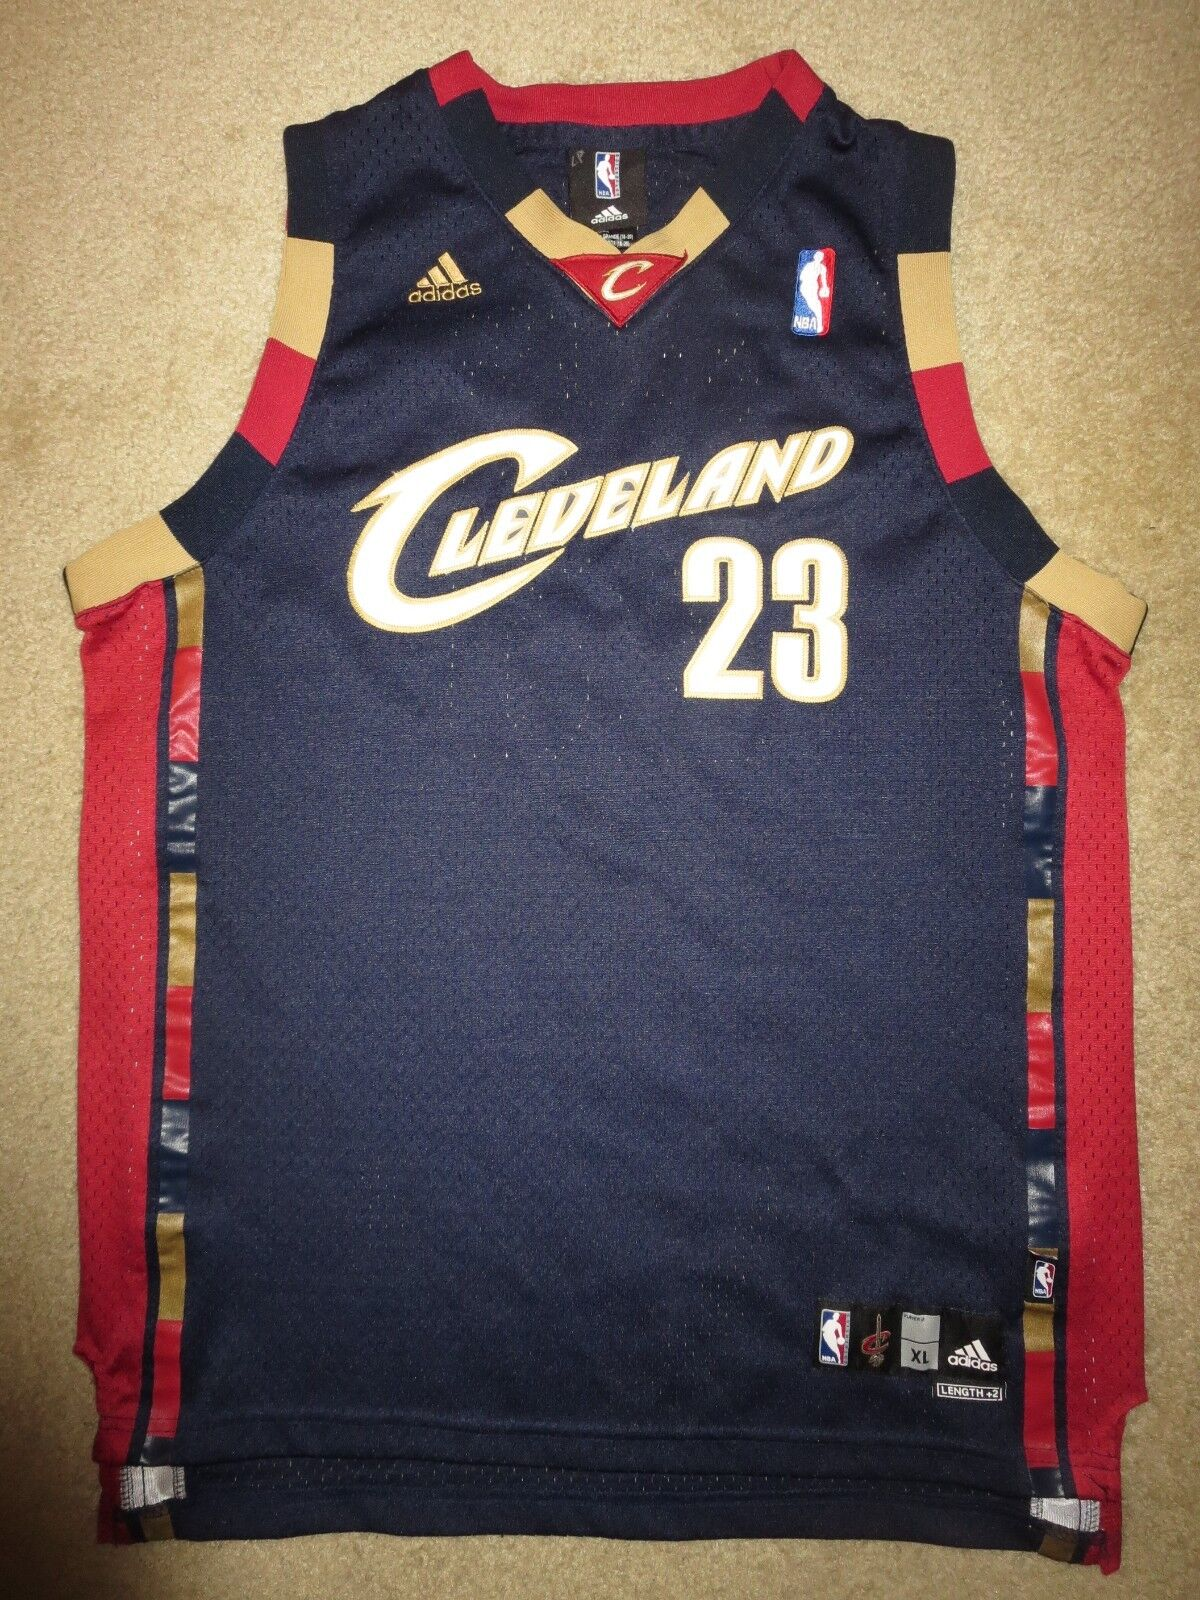 Lebron James  23 23 23 Cleveland Kavaliere NBA Finals Trikot Jugendliche XL 18-20 Kind c85276